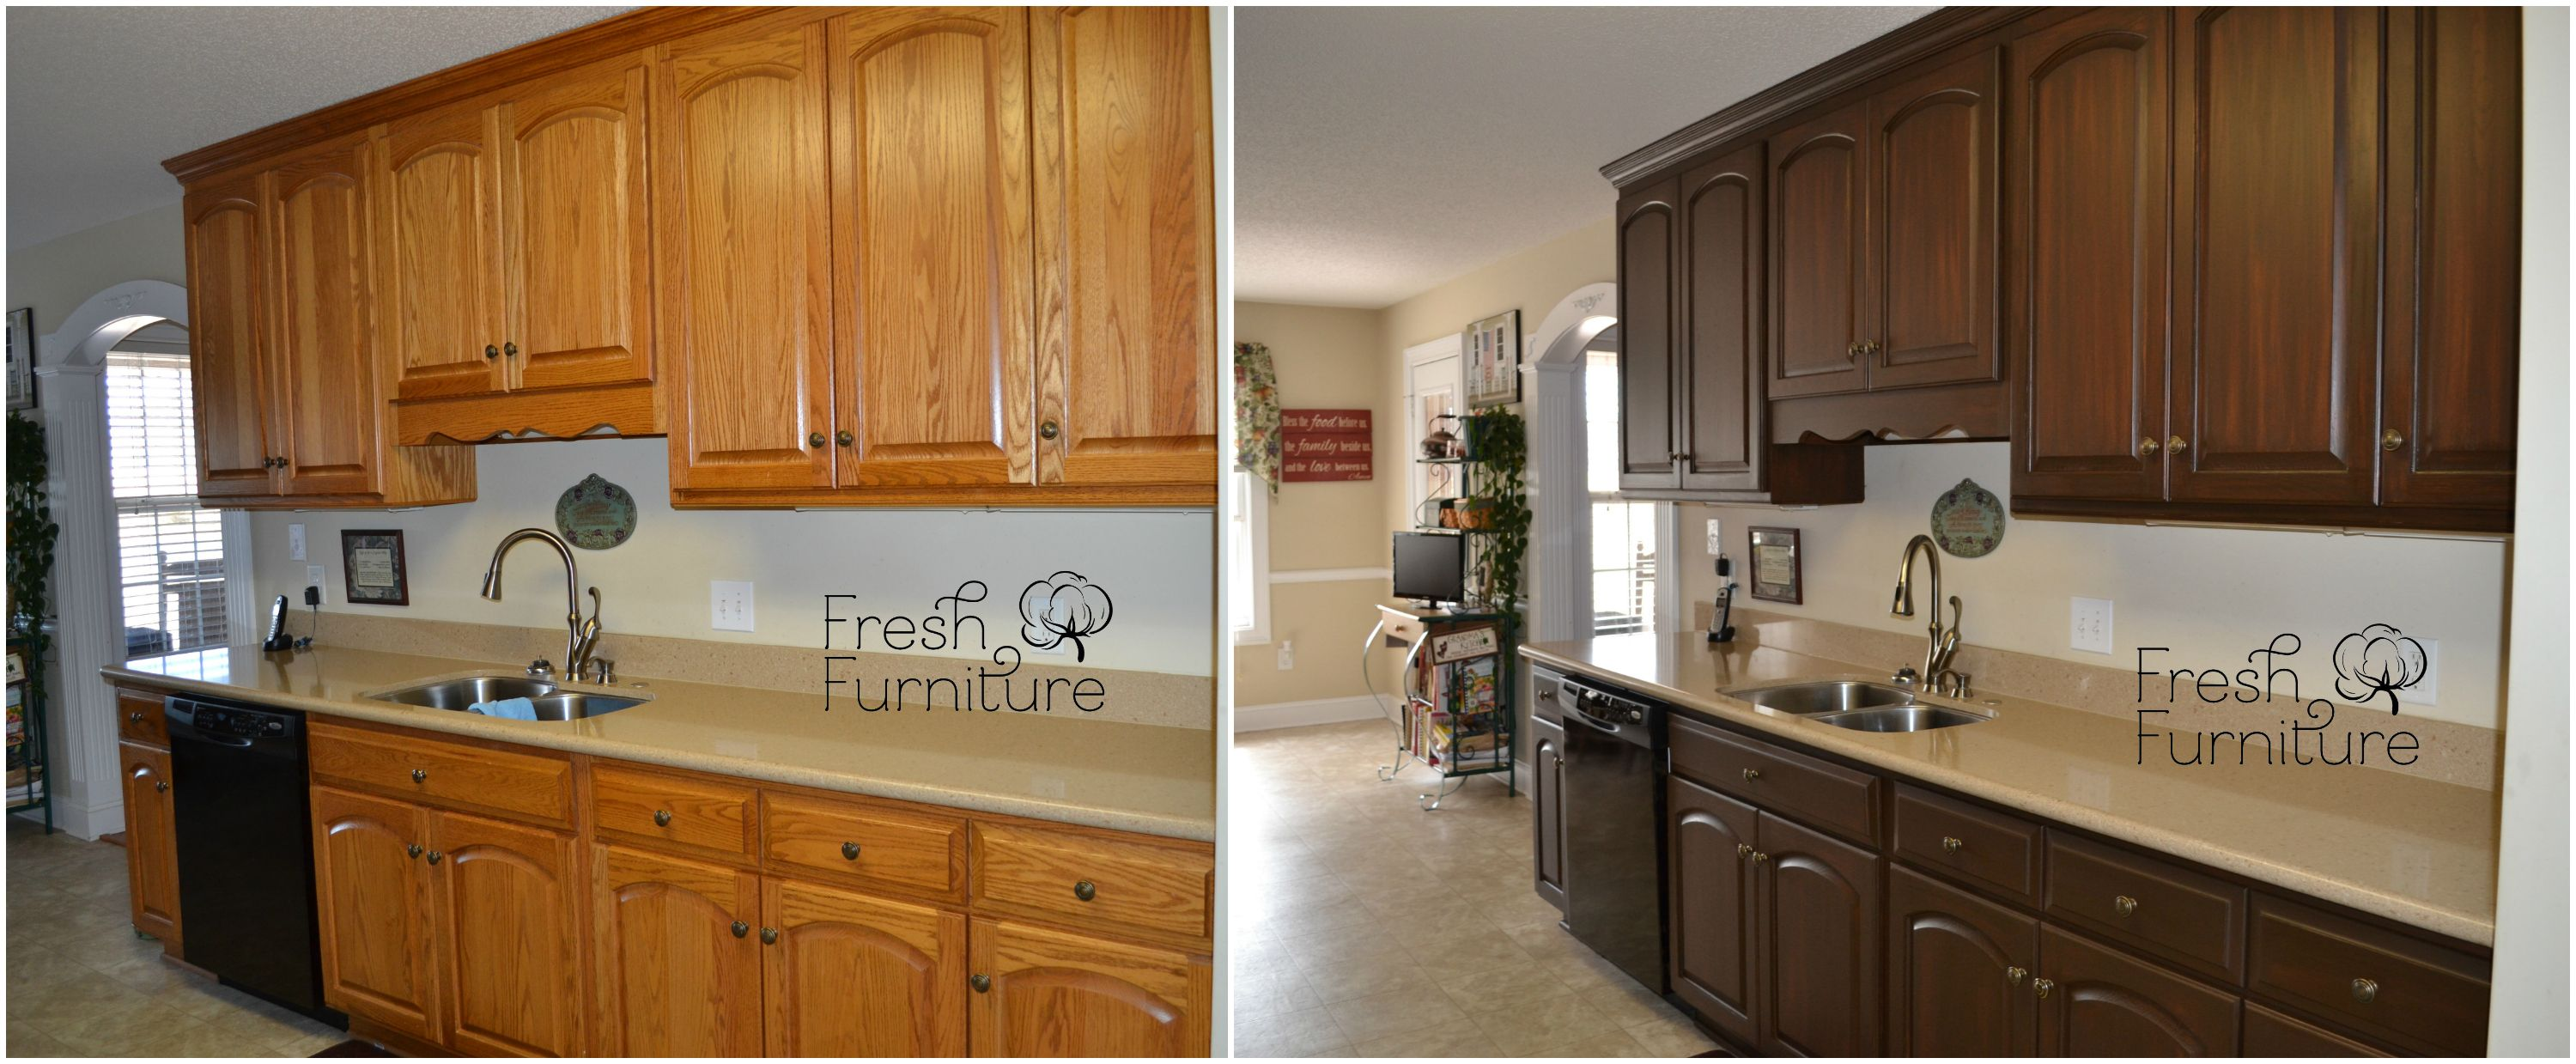 Oak Cabinet Makeover With General Finishes Antique Walnut Gel Stain This Is The Plan For Our